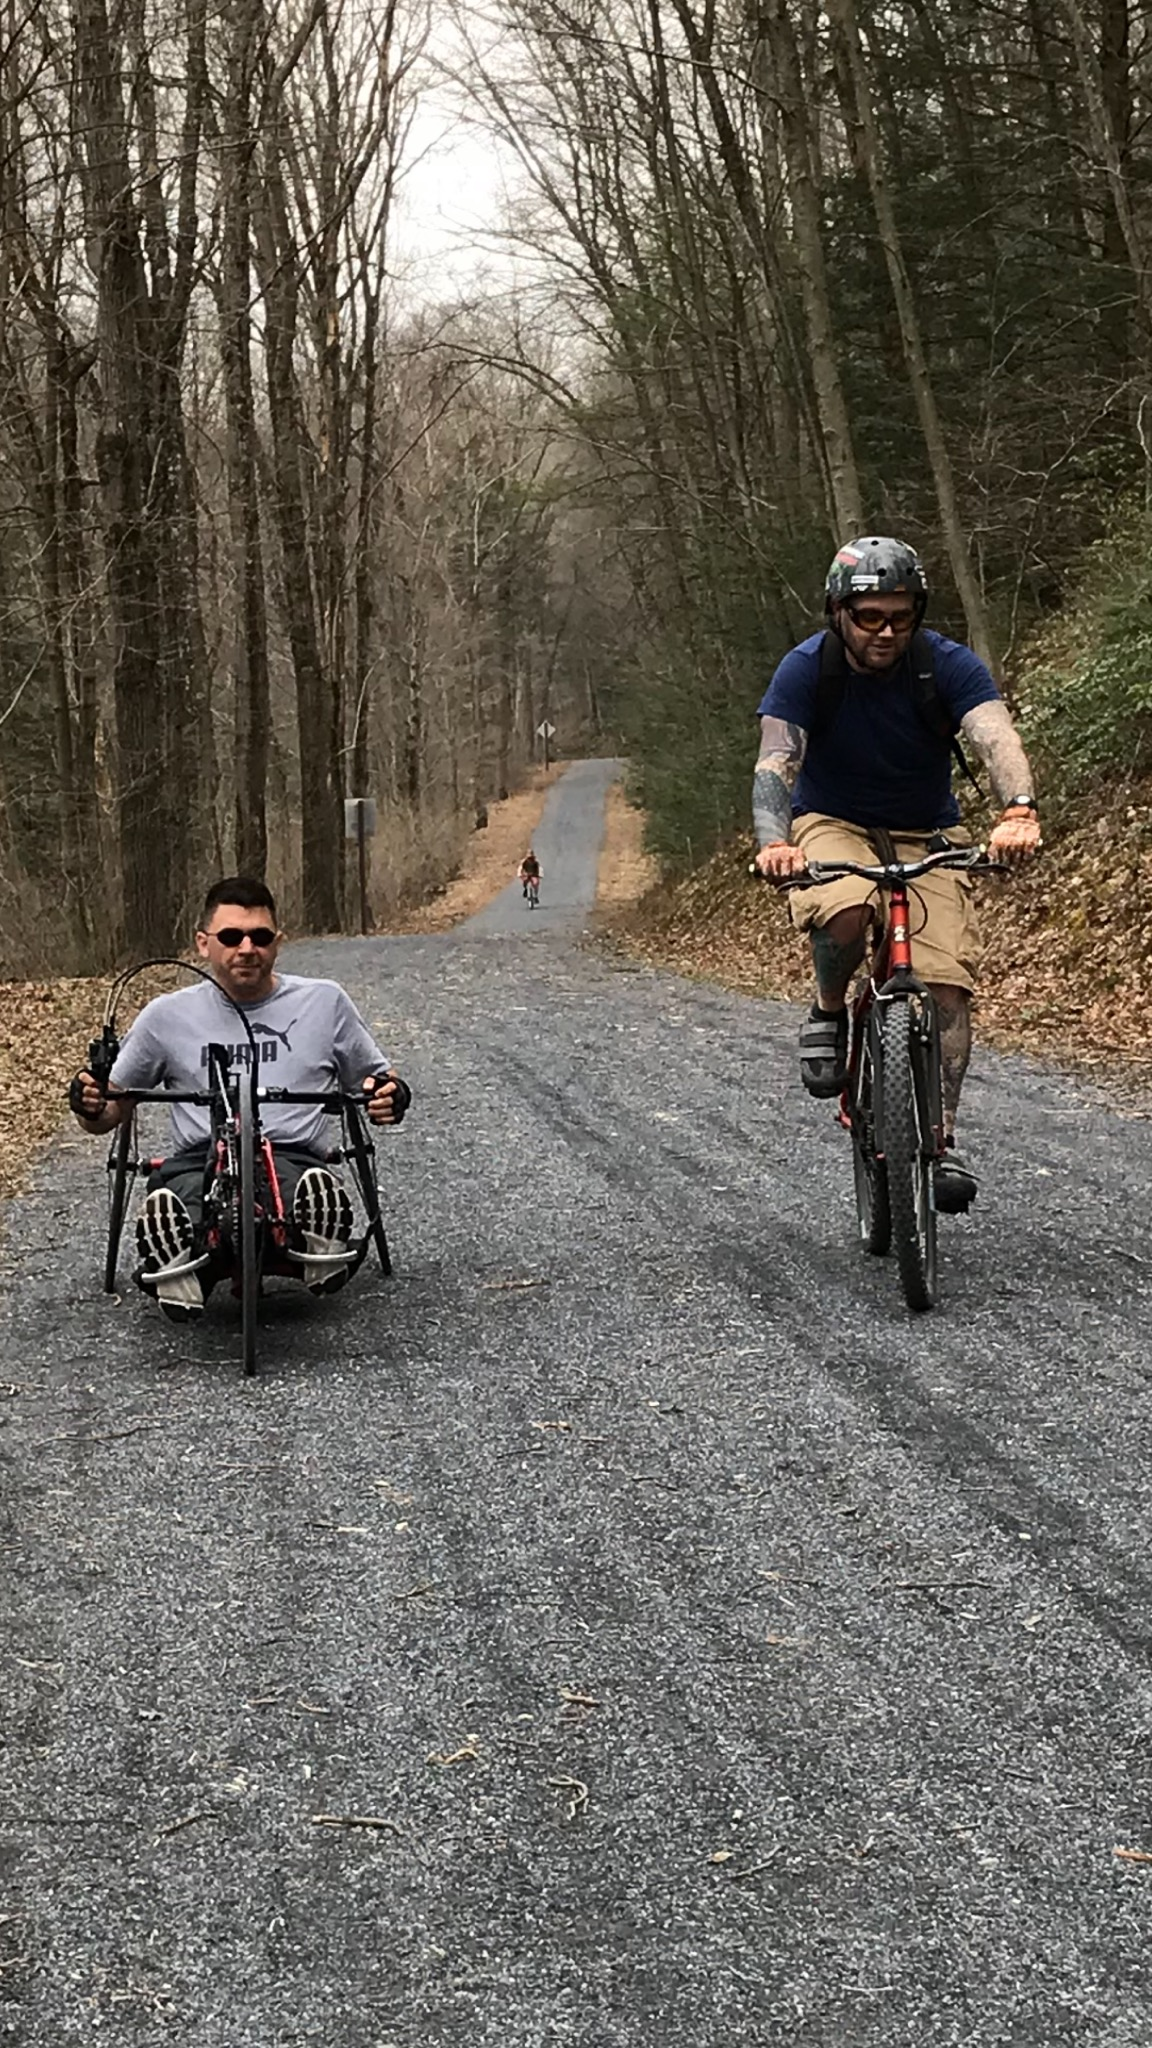 Jeremy Hollinger trail riding with a friend